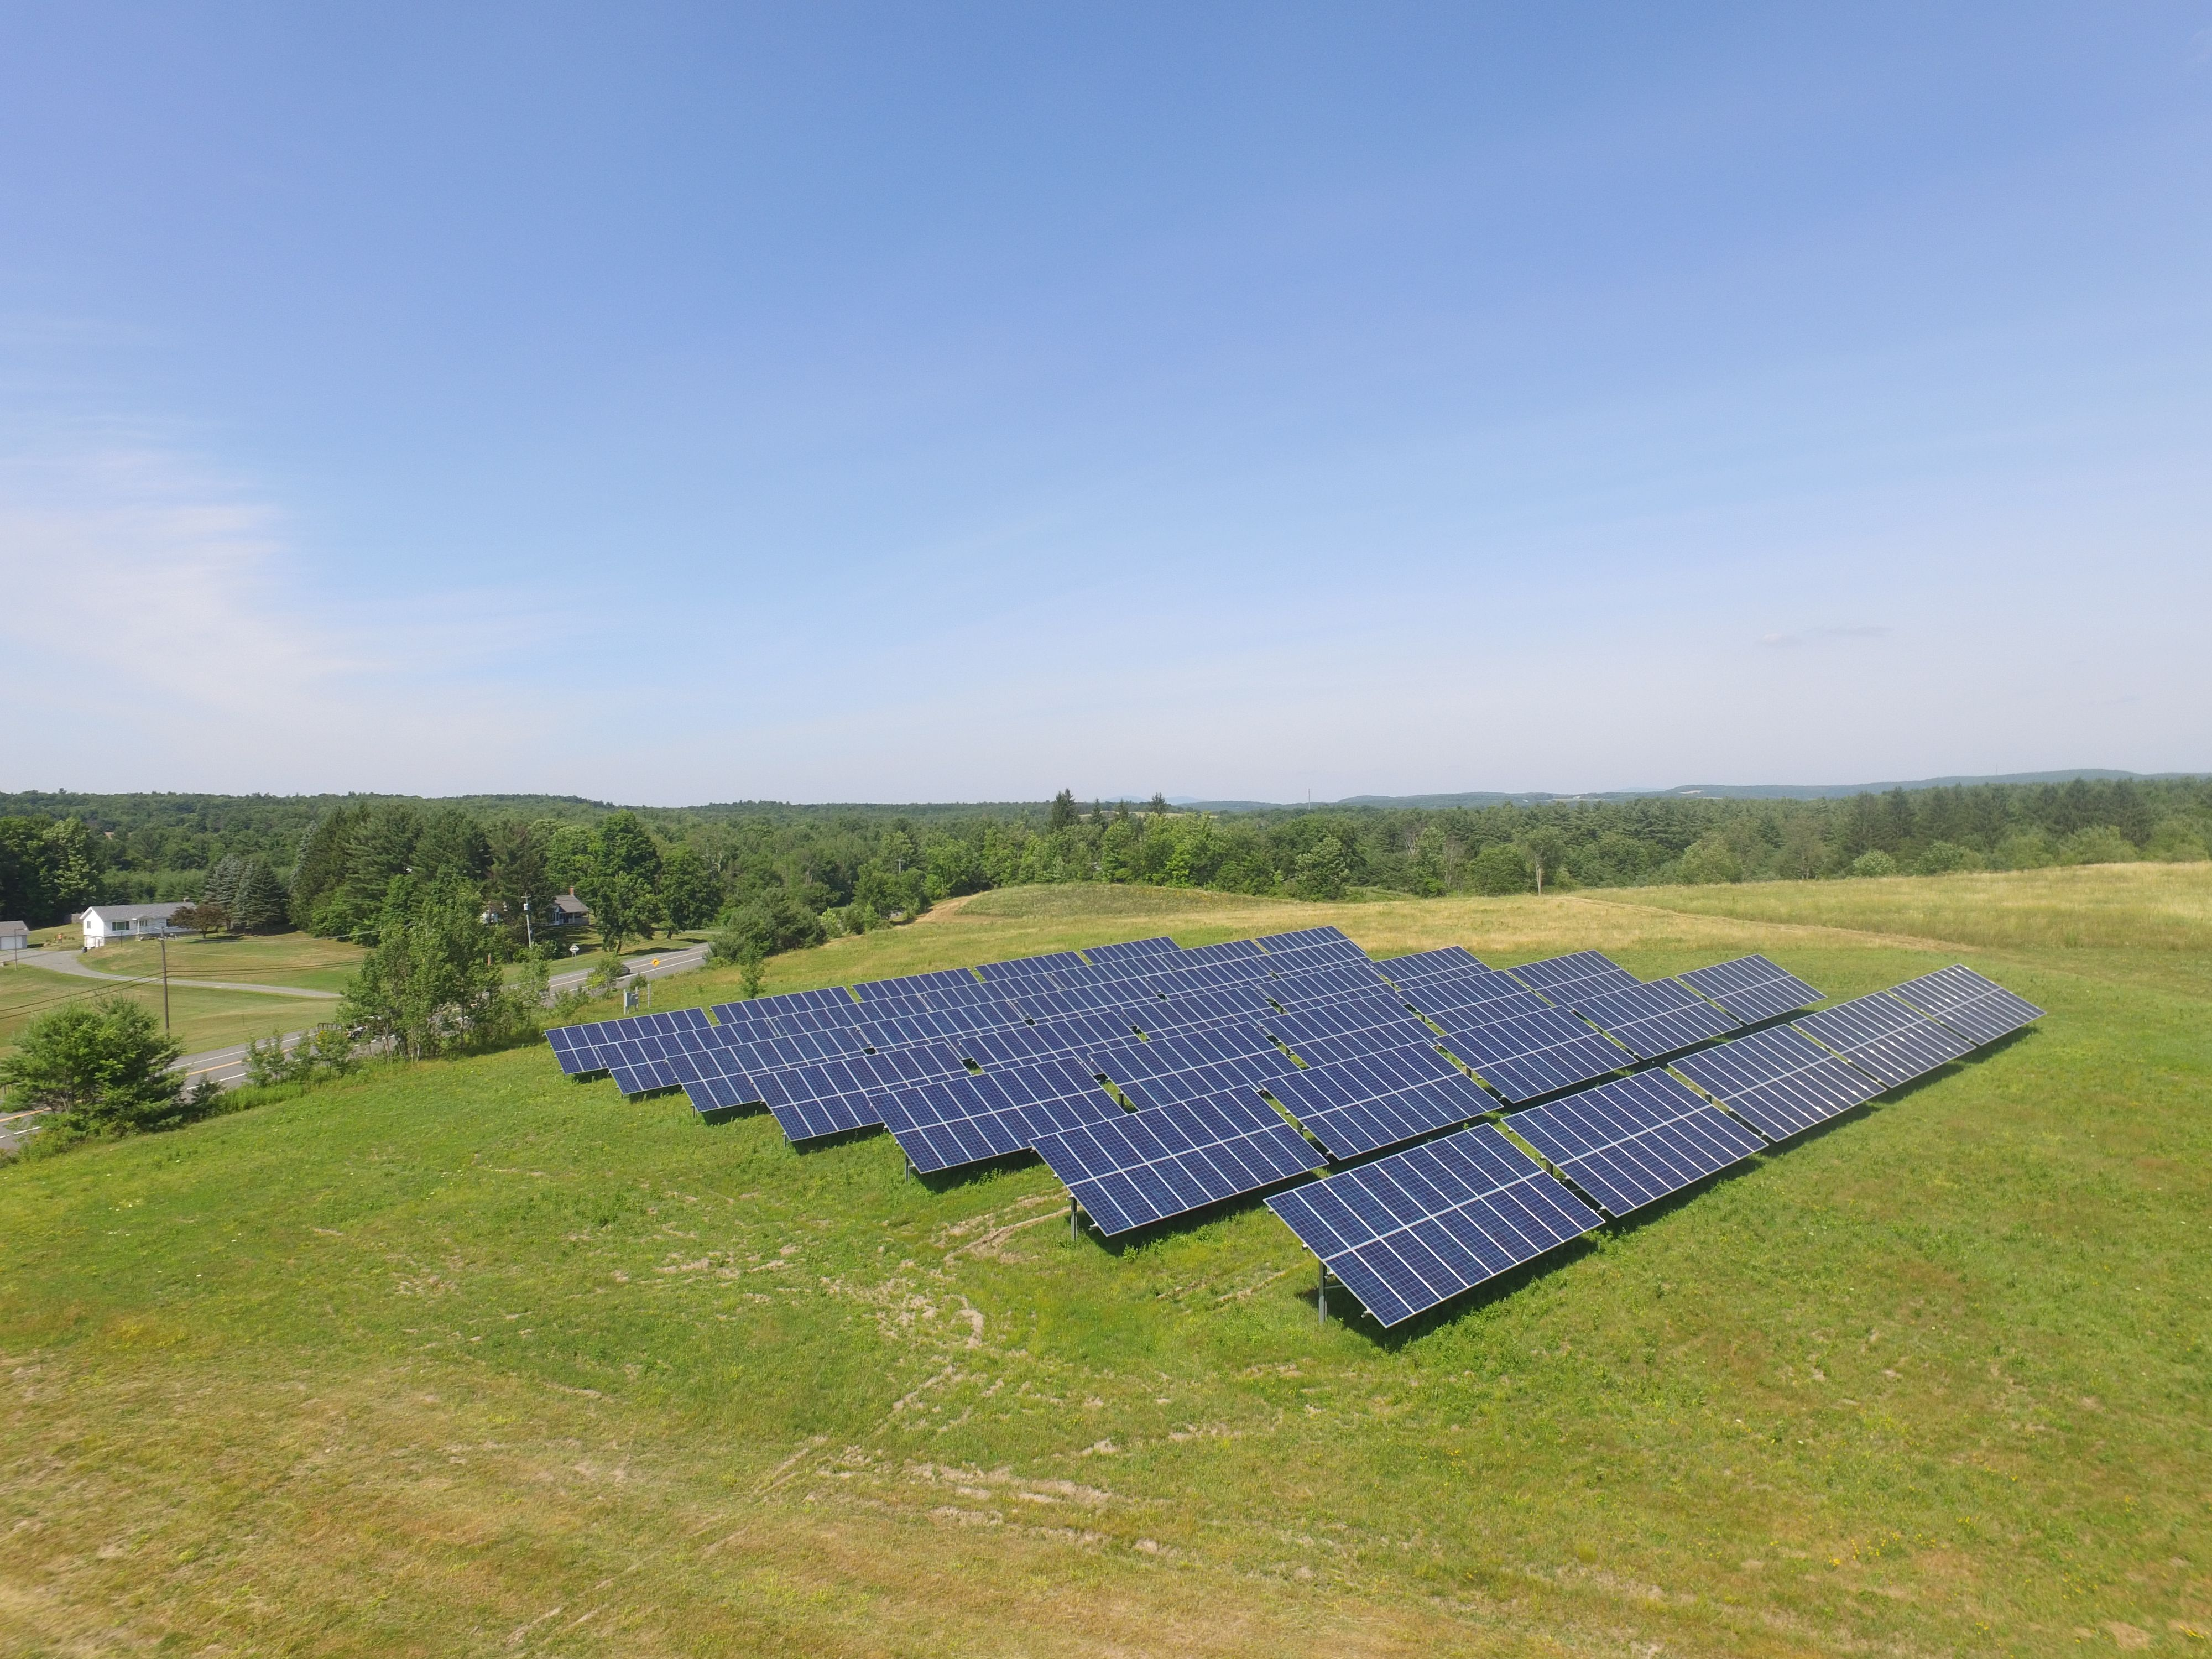 This 200kw Solar Farm Located In Johnsonville Ny Powers Albany Central School District Over 30 Miles Away Learn More Abou Solar Solar Installation Solar Farm